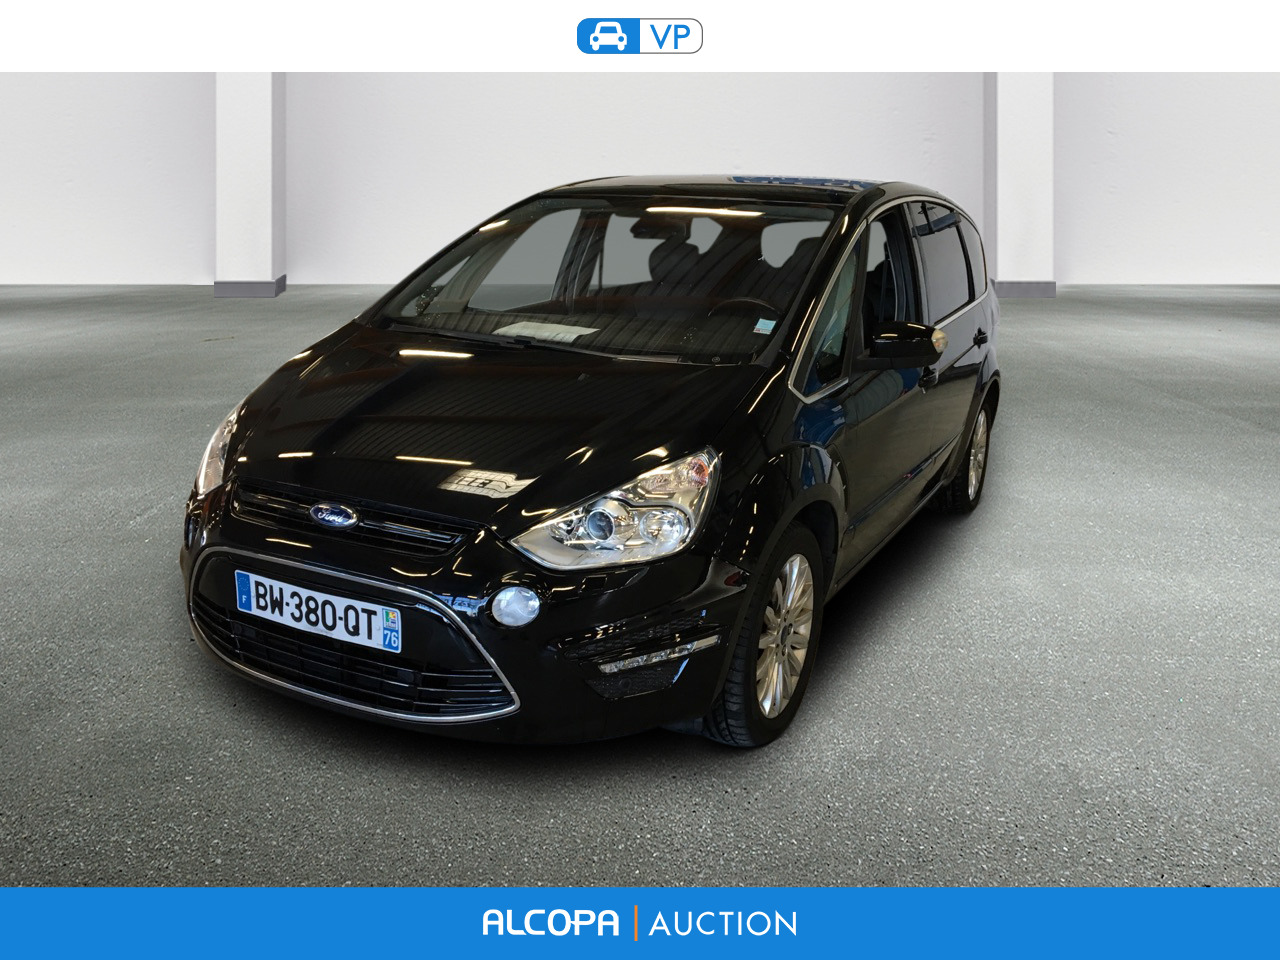 ford s max s max 2 0 tdci 140ch titanium 7 places alcopa auction. Black Bedroom Furniture Sets. Home Design Ideas